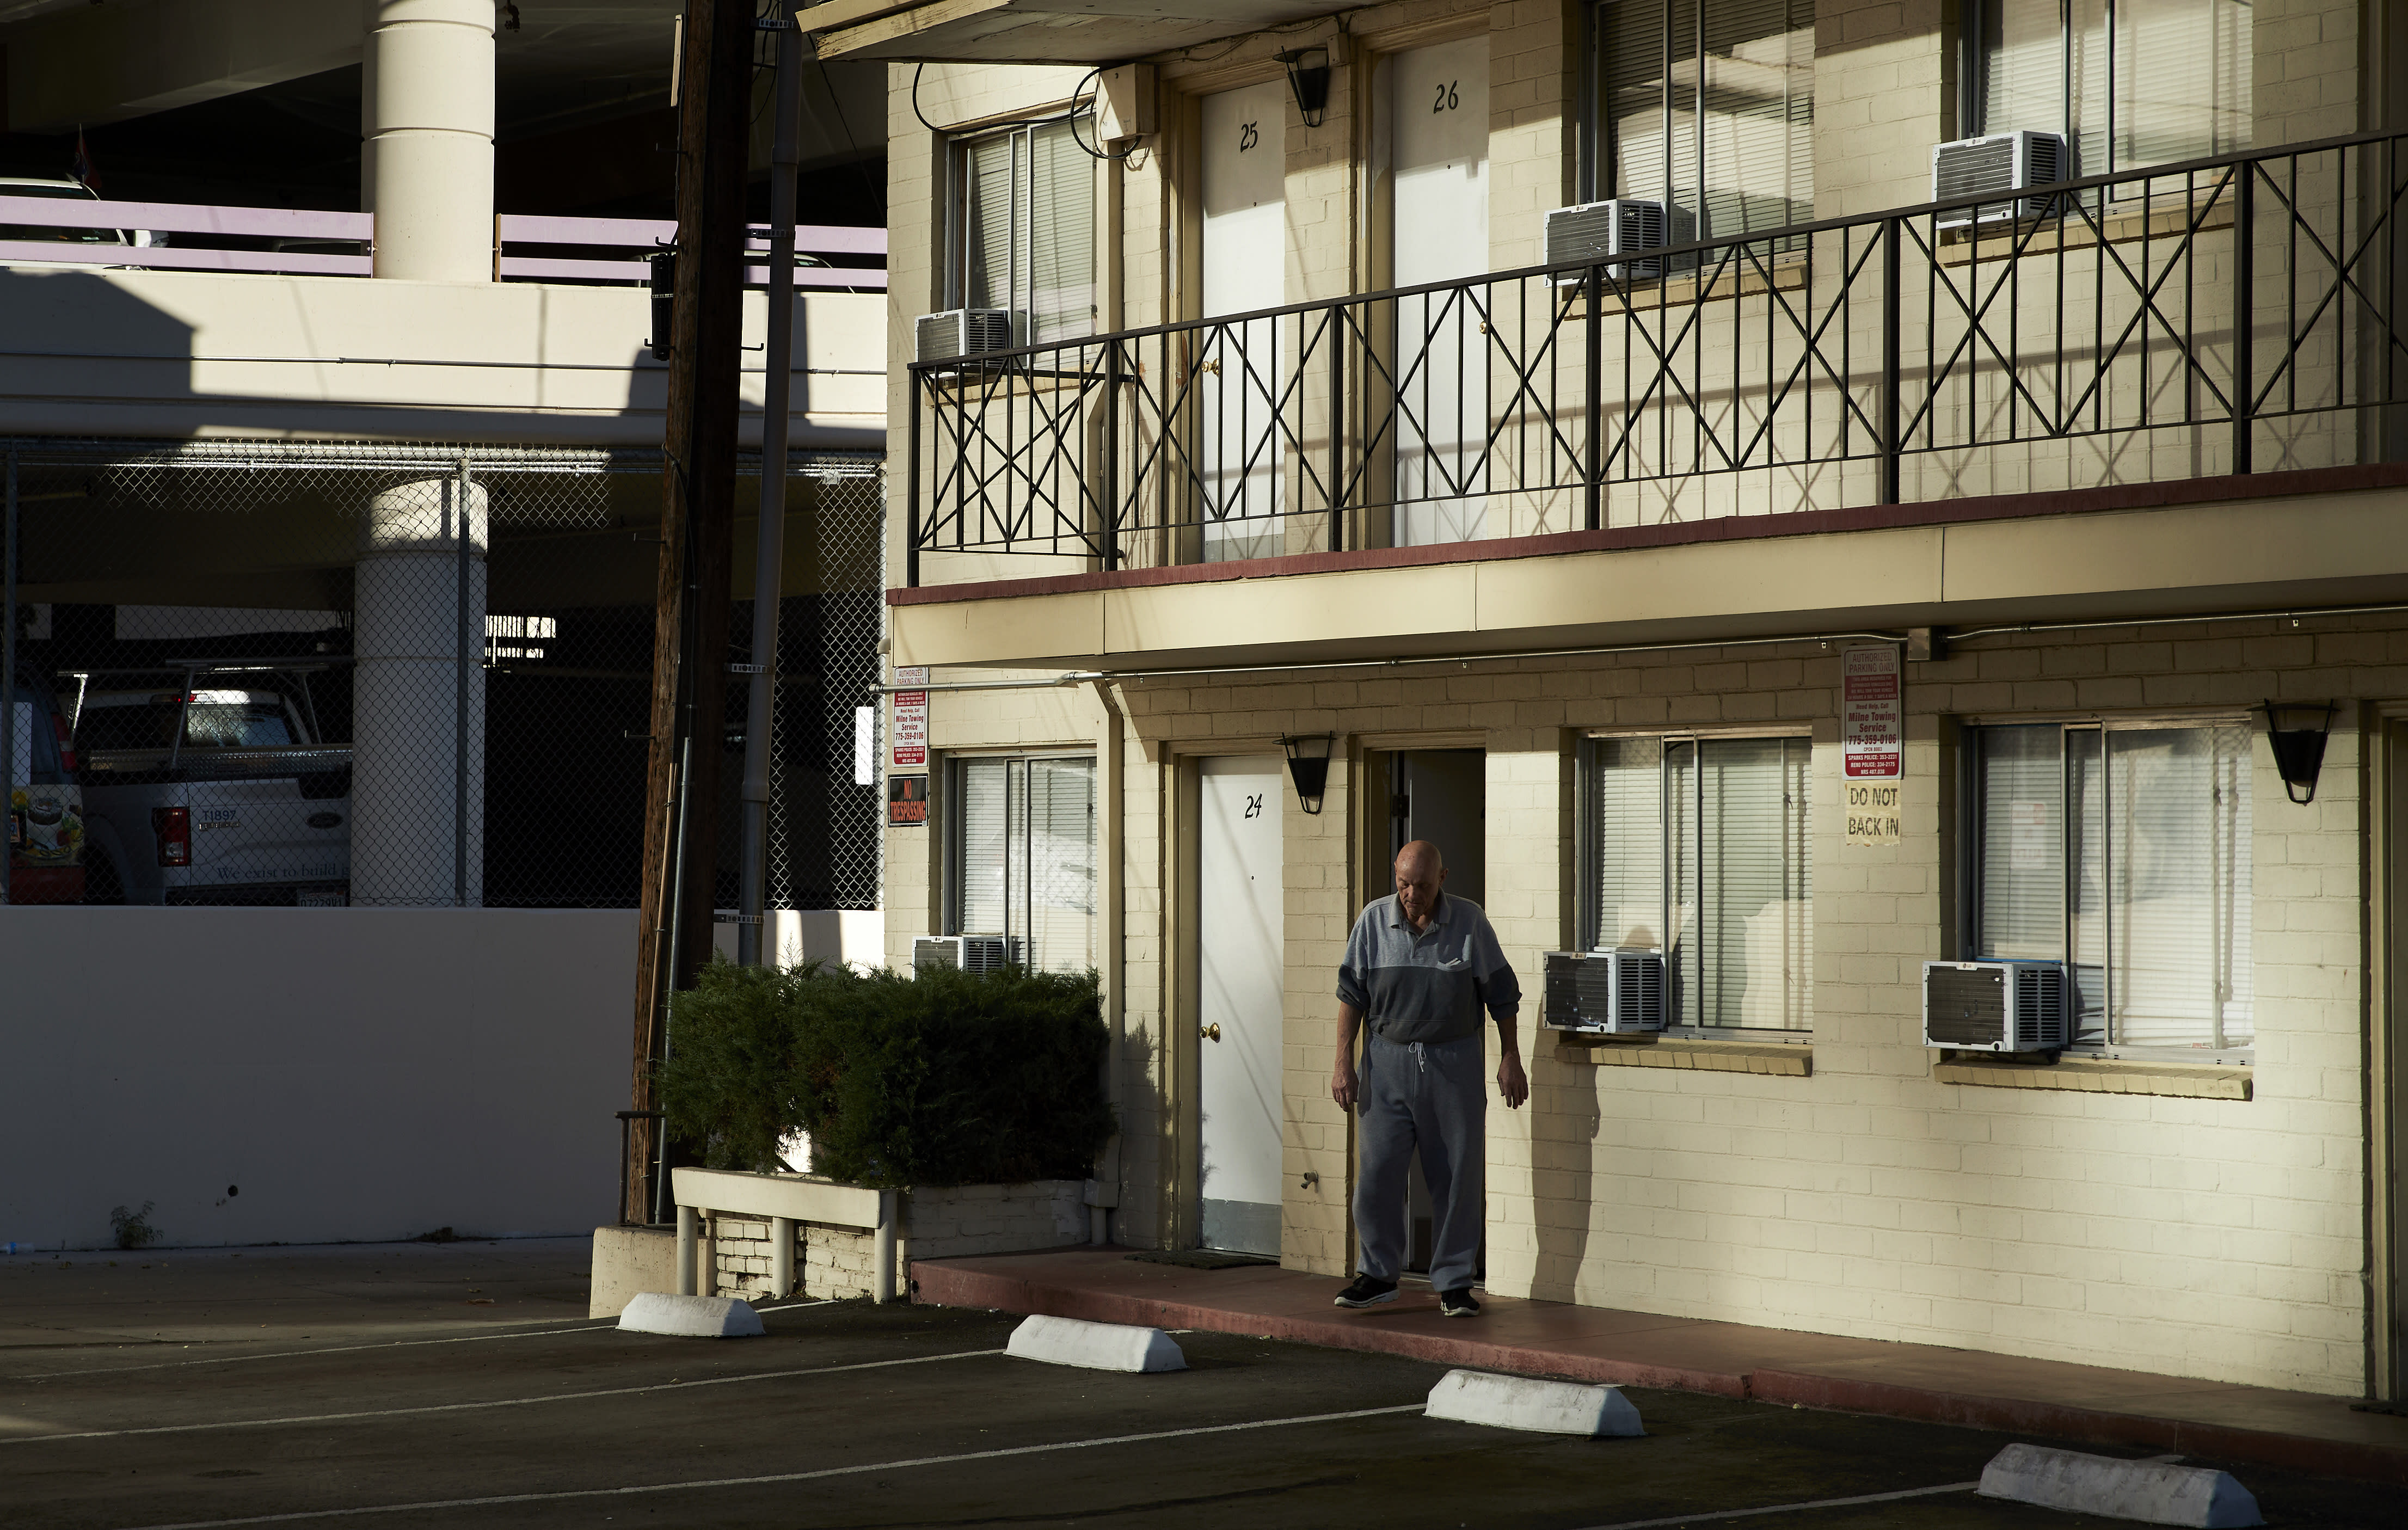 In this Oct. 12, 2018, photo, a man walks out of a weekly rental motel in Reno, Nev. The economic recovery has allowed Reno to reclaim its status as a boomtown, but that has been bad news for people on the margins who are having a harder time finding an affordable place to live, forcing many into the dozens of weekly rental motor lodges around the city. (AP Photo/John Locher)